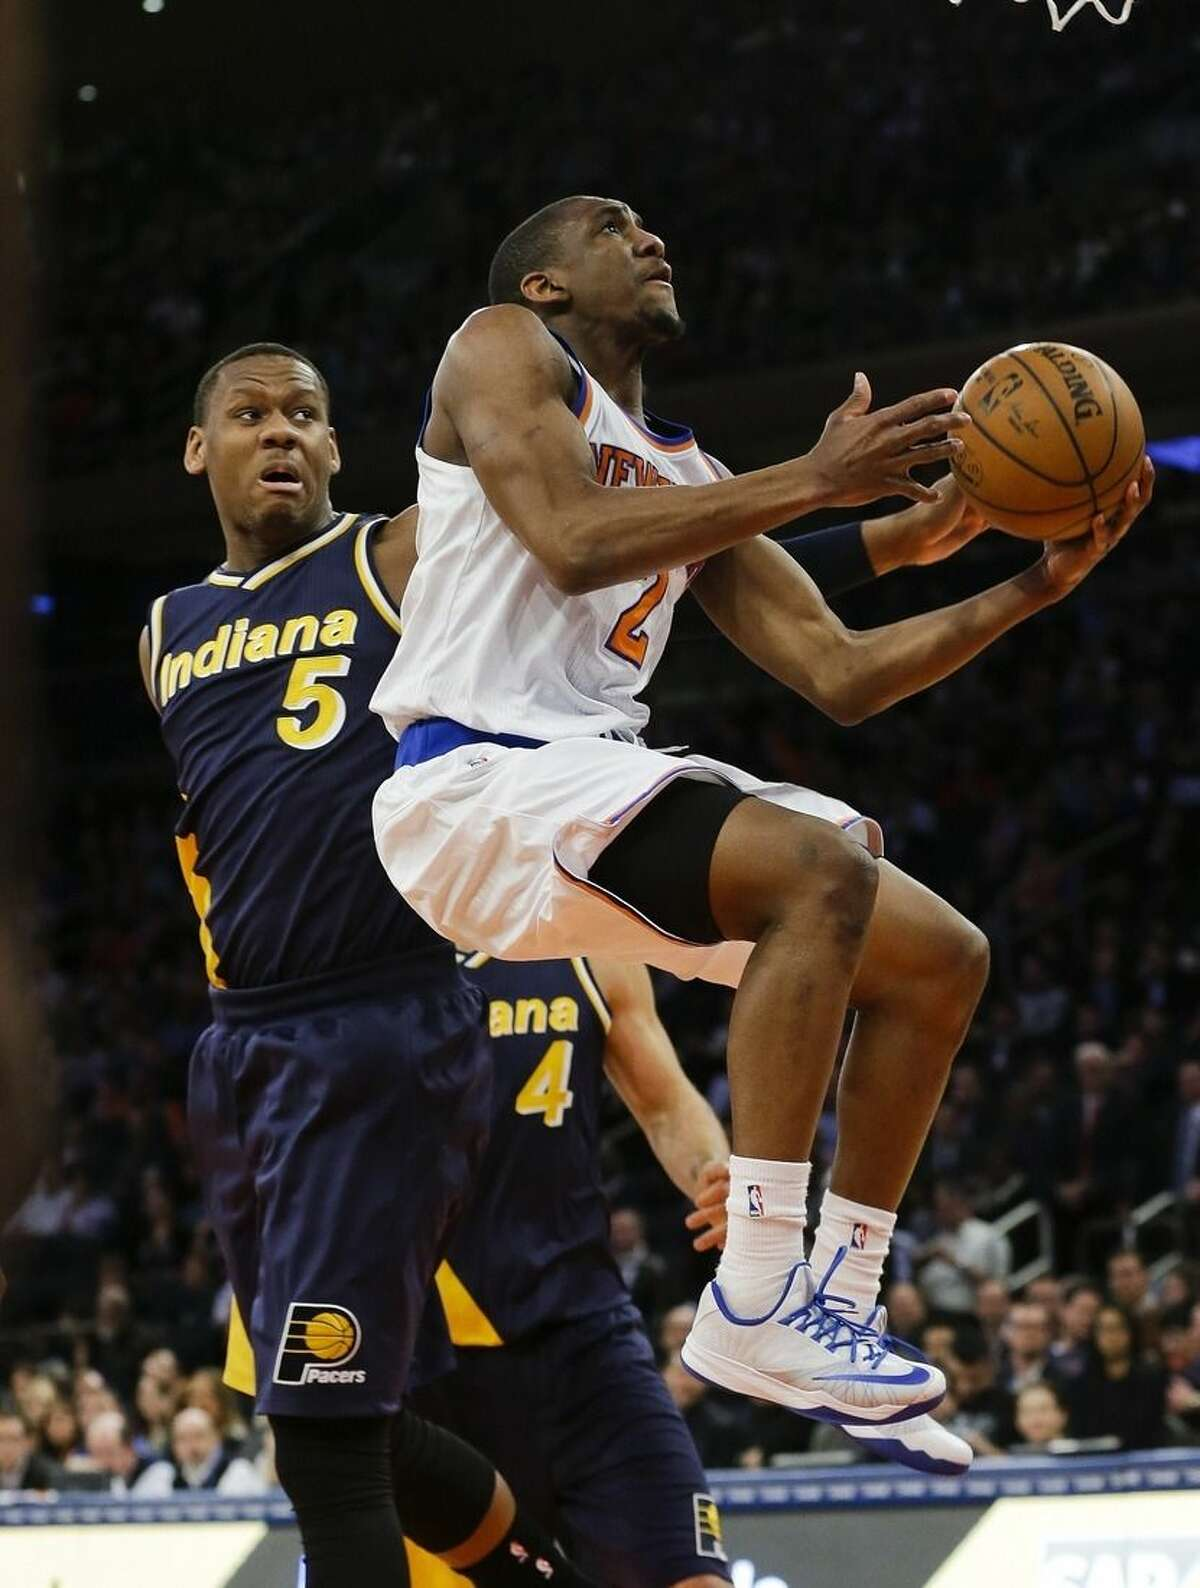 New York Knicks' Langston Galloway (2) drives past Indiana Pacers' Lavoy Allen (5) during the first half of an NBA basketball game Wednesday, April 8, 2015, in New York. (AP Photo/Frank Franklin II)